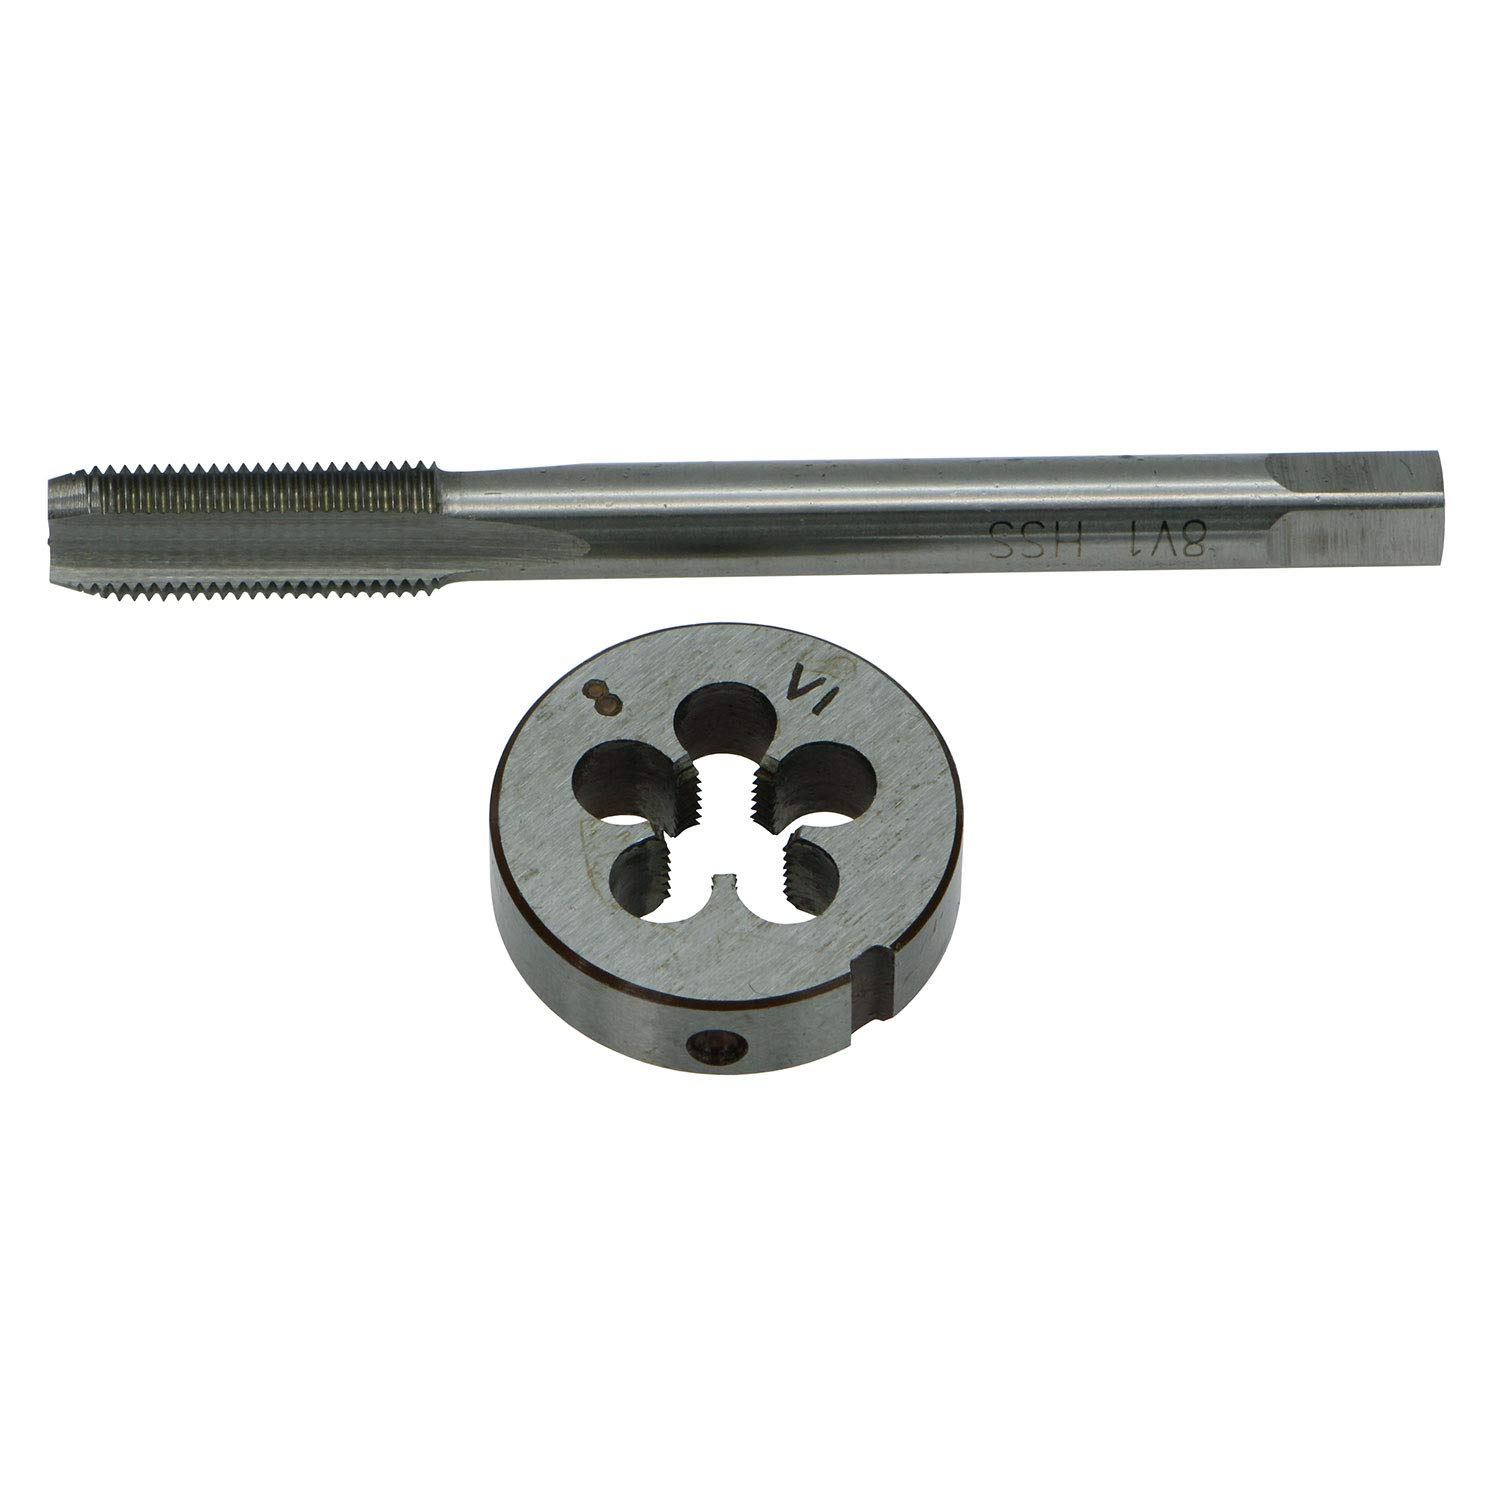 GZTool 0.305'' - 32 TPI 8V1-32 Schrader Tyre/Tire Valve Thread Tap and Die Set 0.305-32 (.305x32) by GZTool